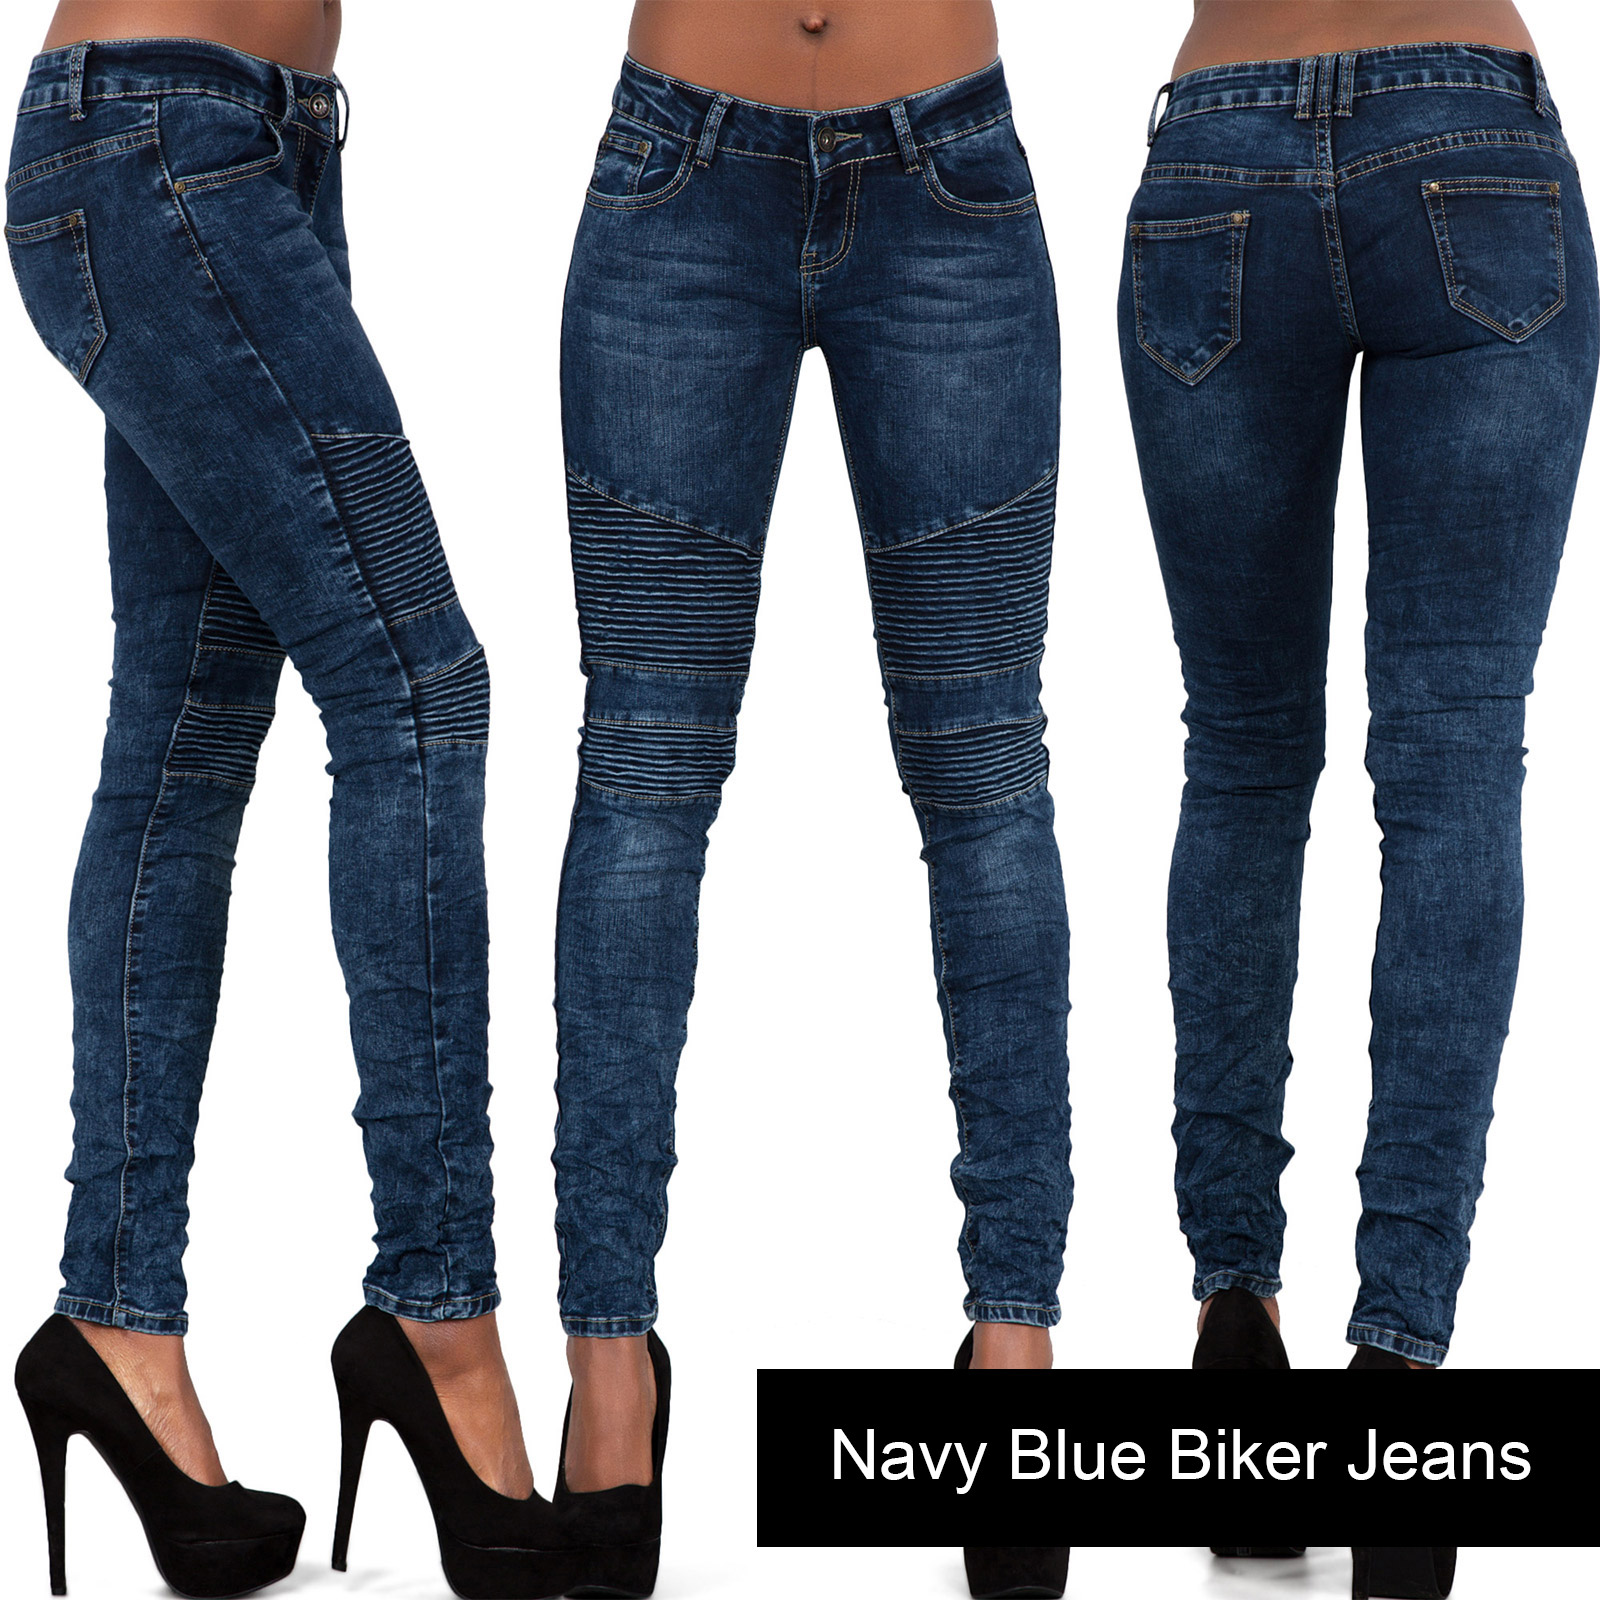 Ladies-Women-Acid-Wash-Blue-Grey-Skinny-Jeans-Stretch-Trouser-Size-6-8-10-12-14